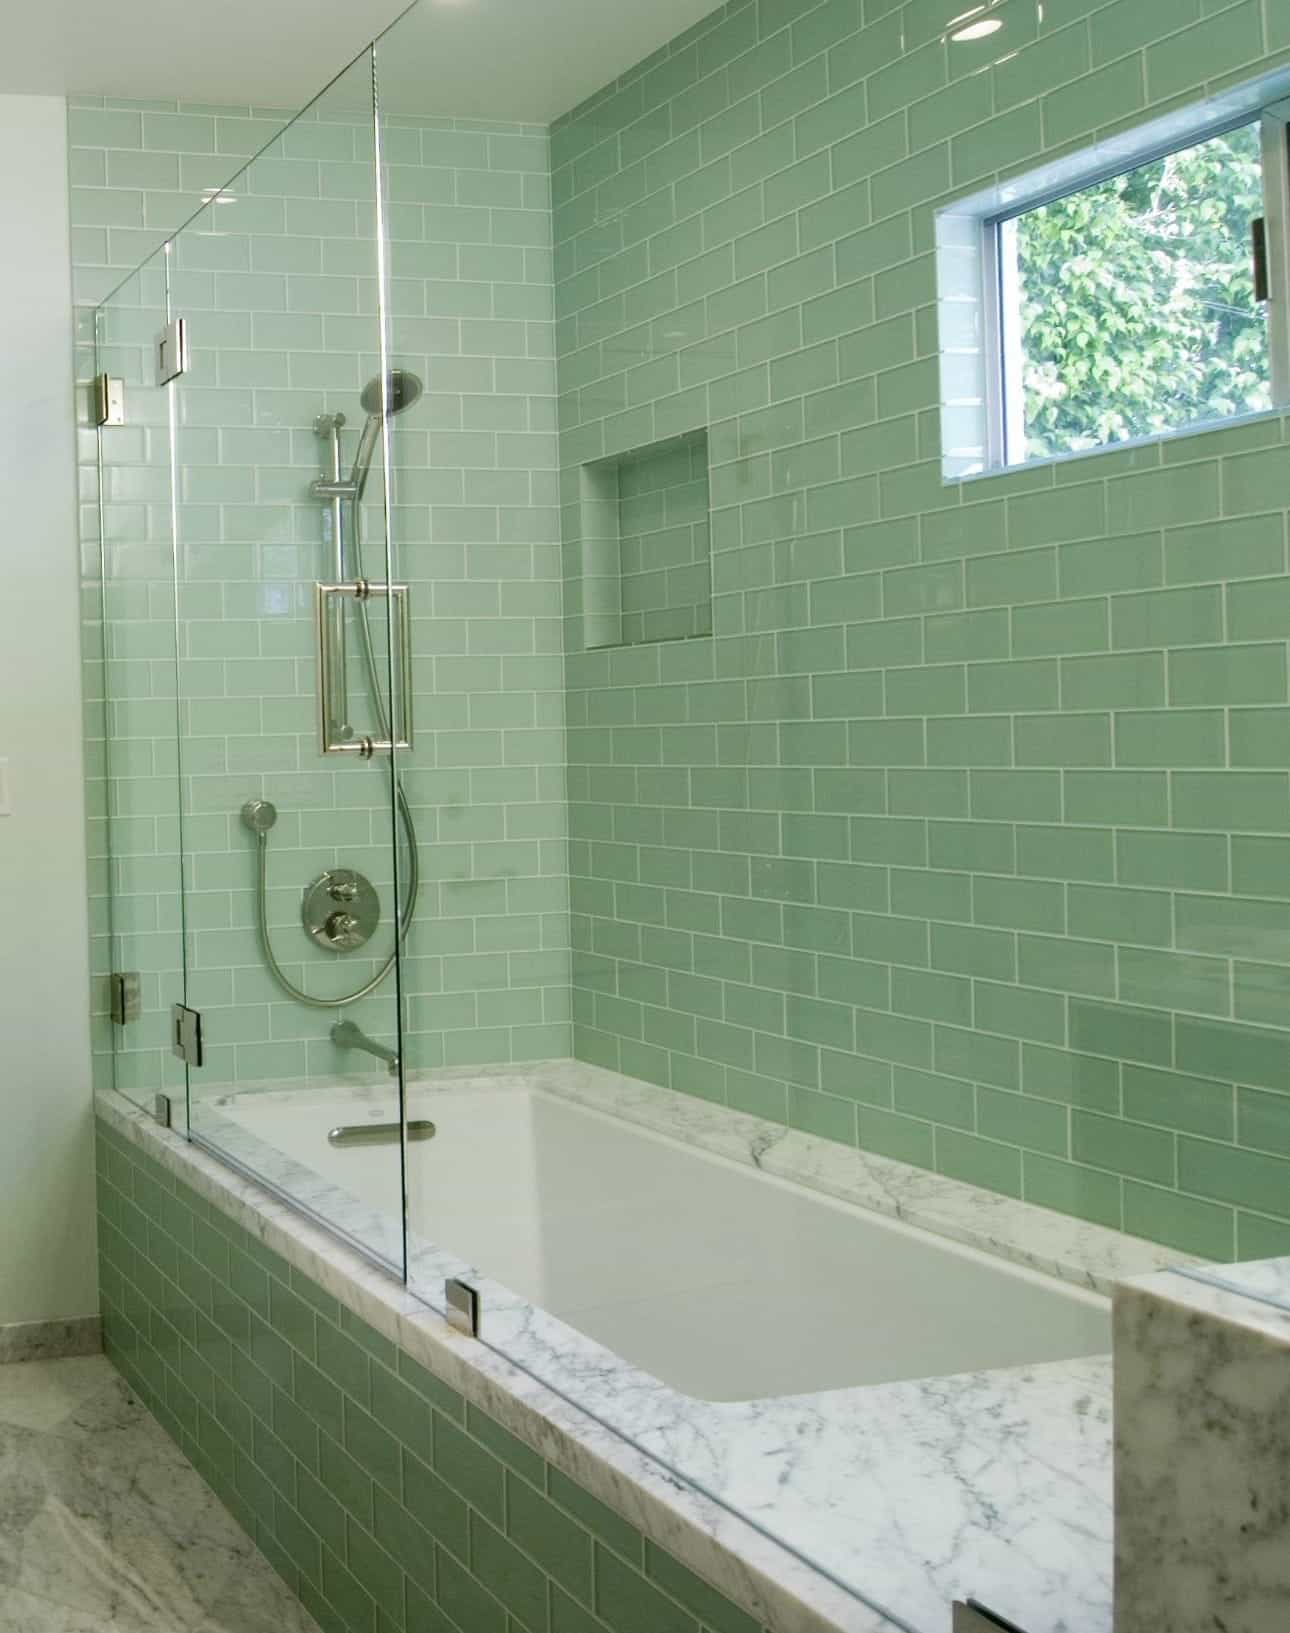 Contemporary Bathroom With Bathtub And Shower Combo With Green Ceramic Tiles (Image 6 of 12)